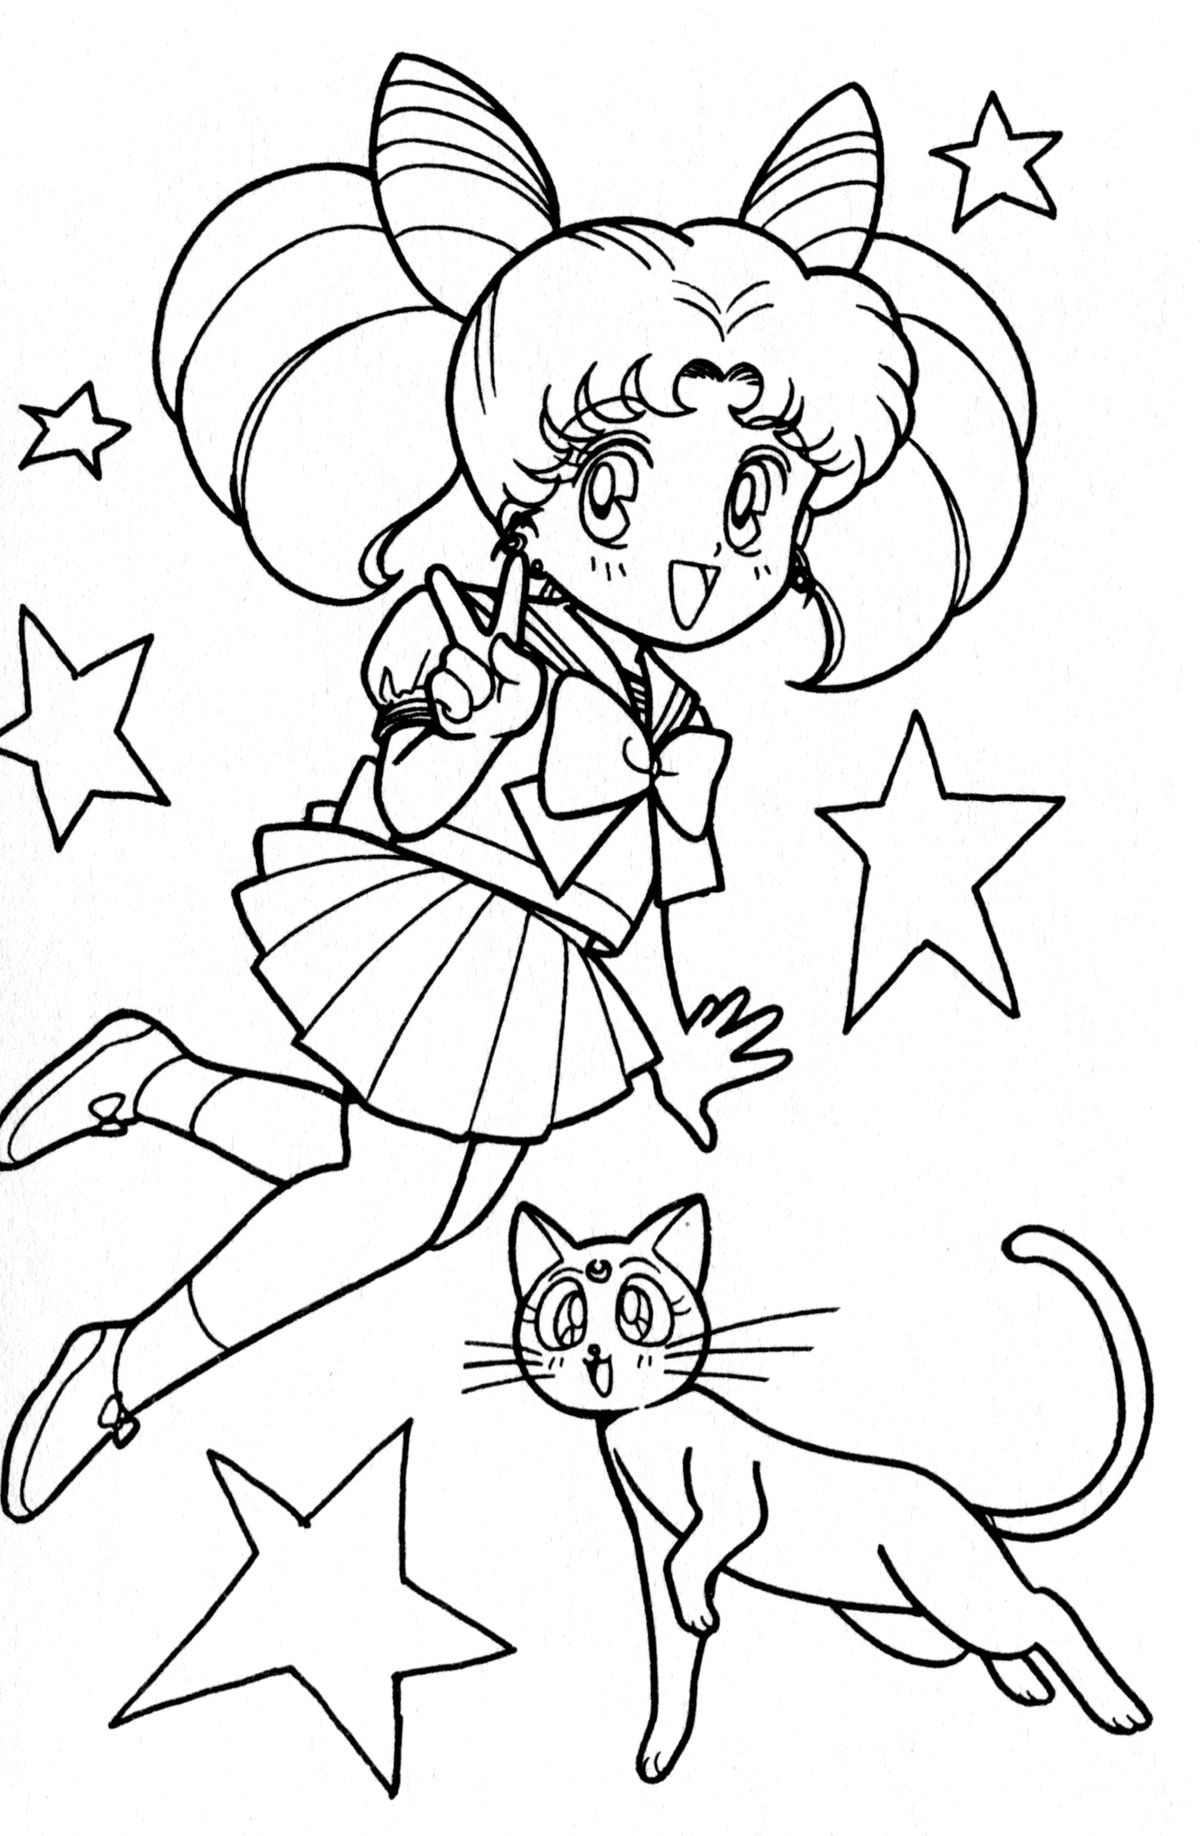 49++ Cute sailor moon coloring pages ideas in 2021